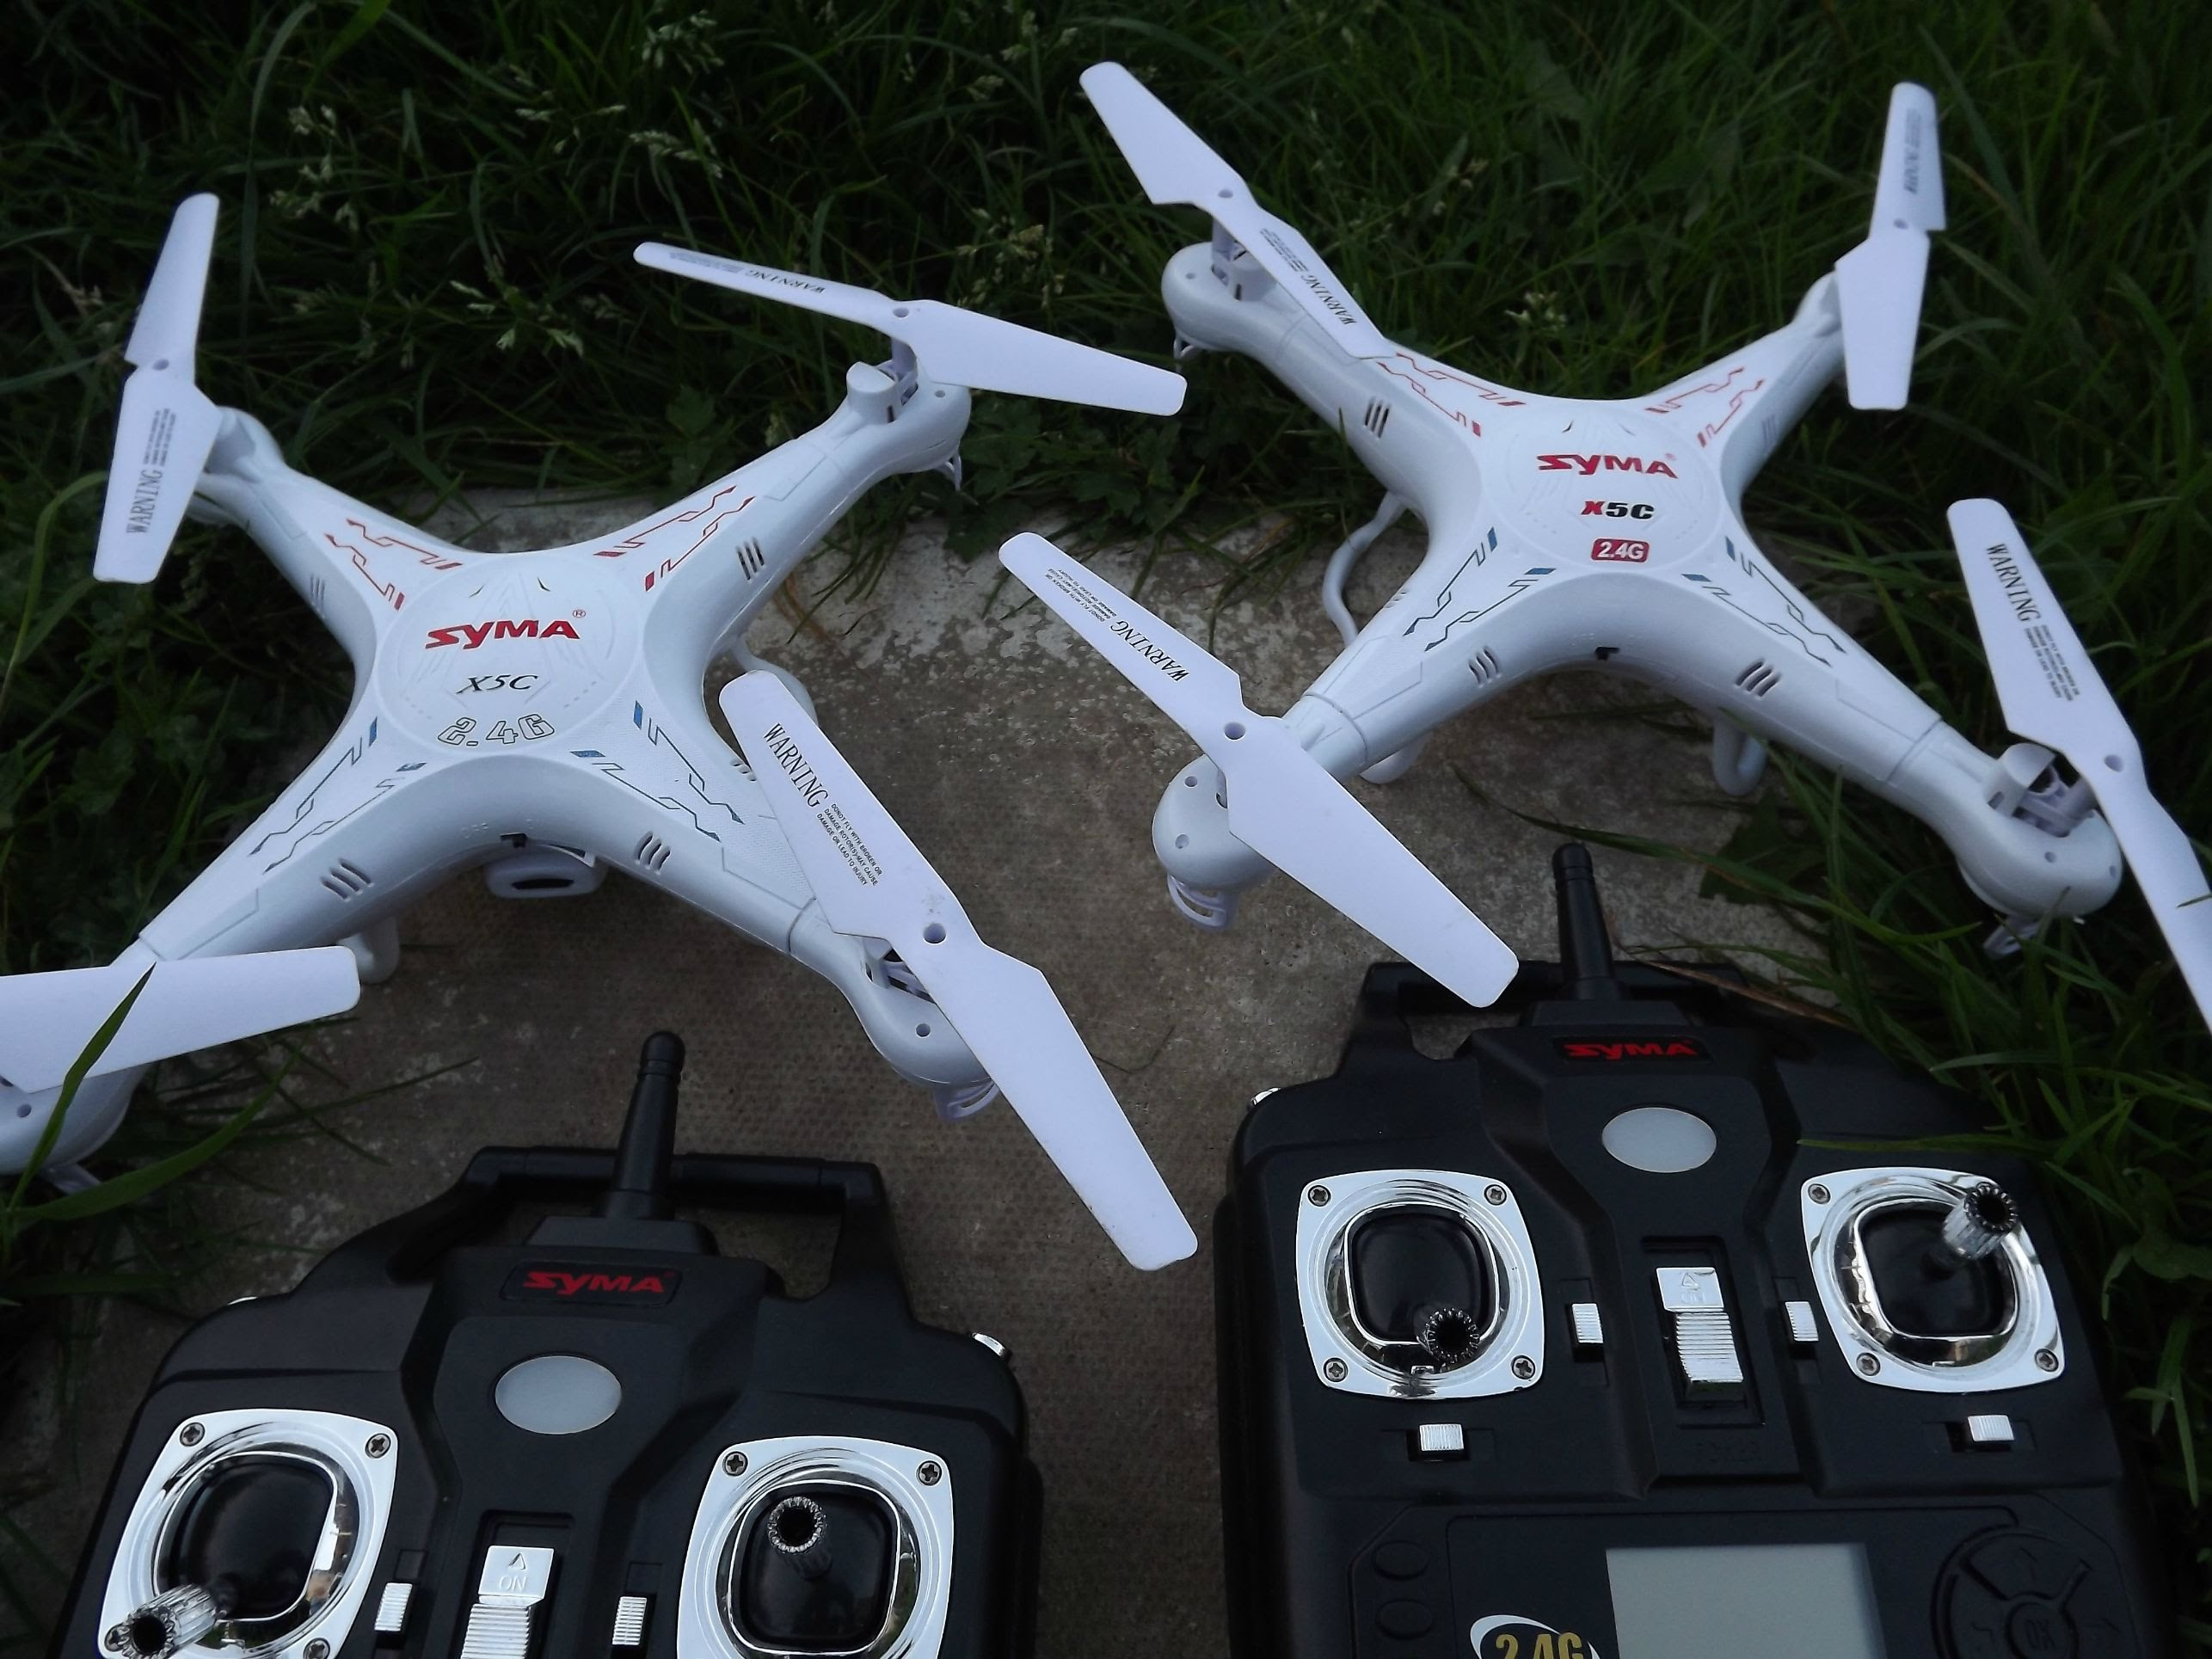 Syma X5 Análise review